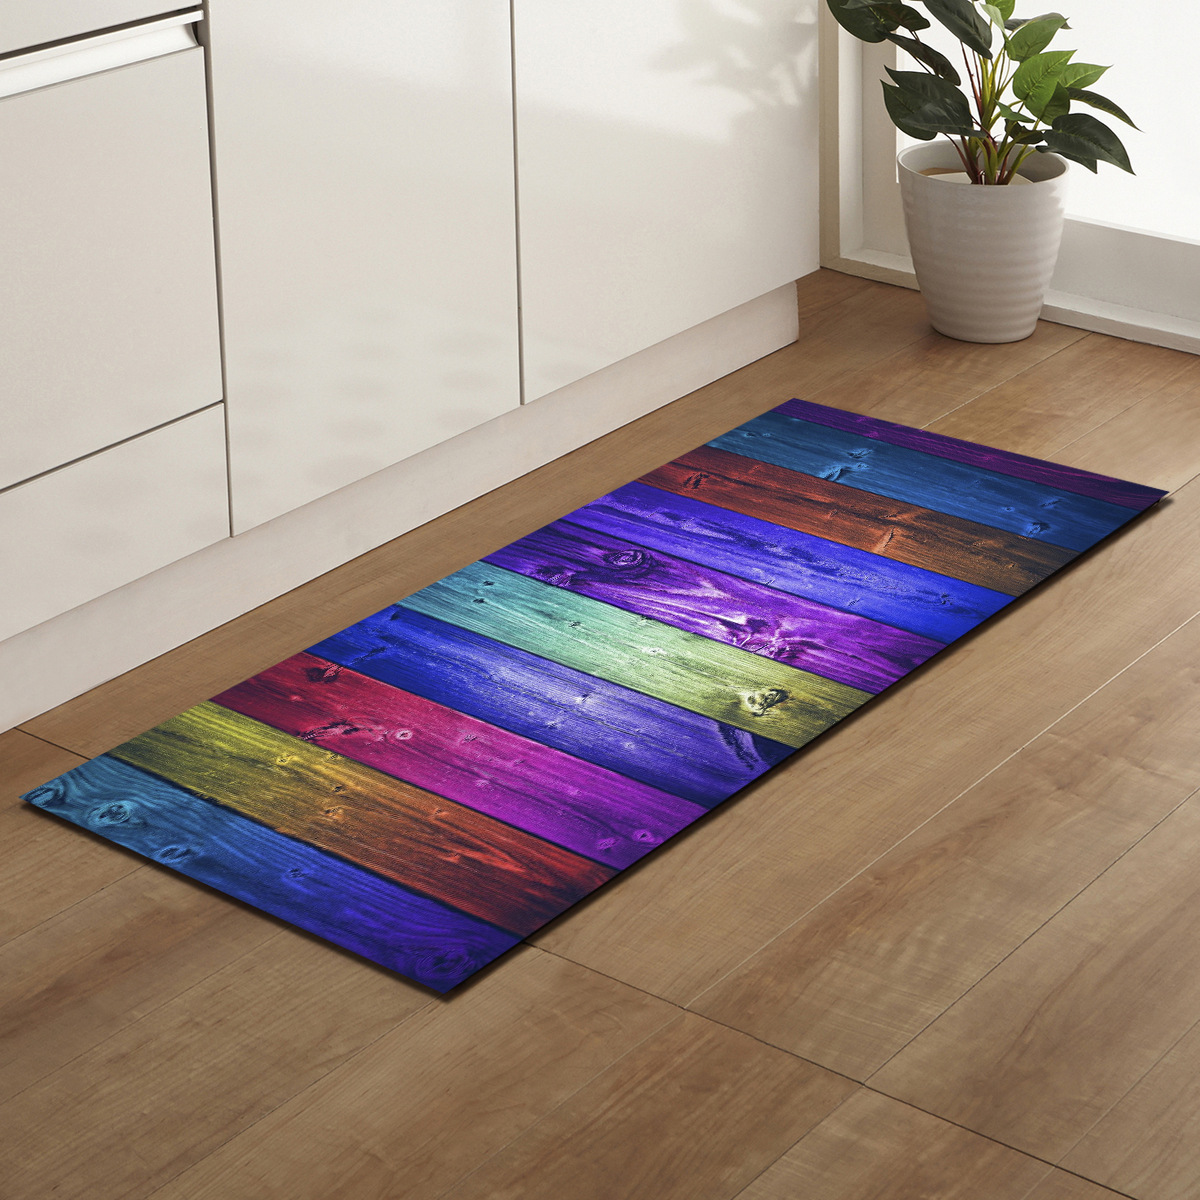 Us 9 78 33 Off Zeegle Wood Pattern Rectangle Corridor Mats Welcome Door Mat Living Room Rugs Anti Slip Kitchen Floor Mats Bedroom Bedside Mats In